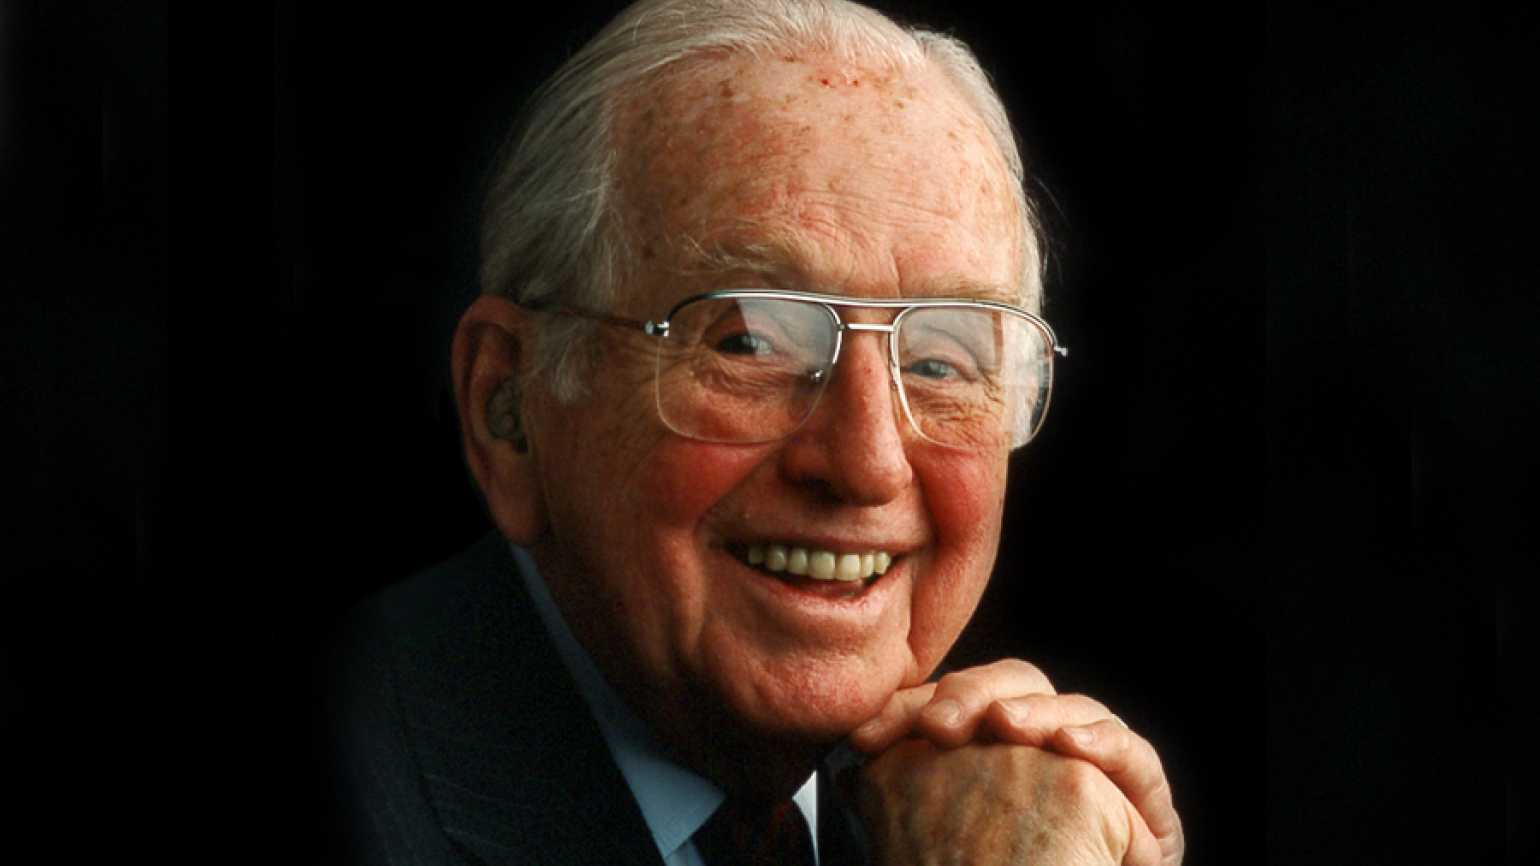 Dr. Norman Vincent Peale, pastor, author and founder of Guideposts magazine